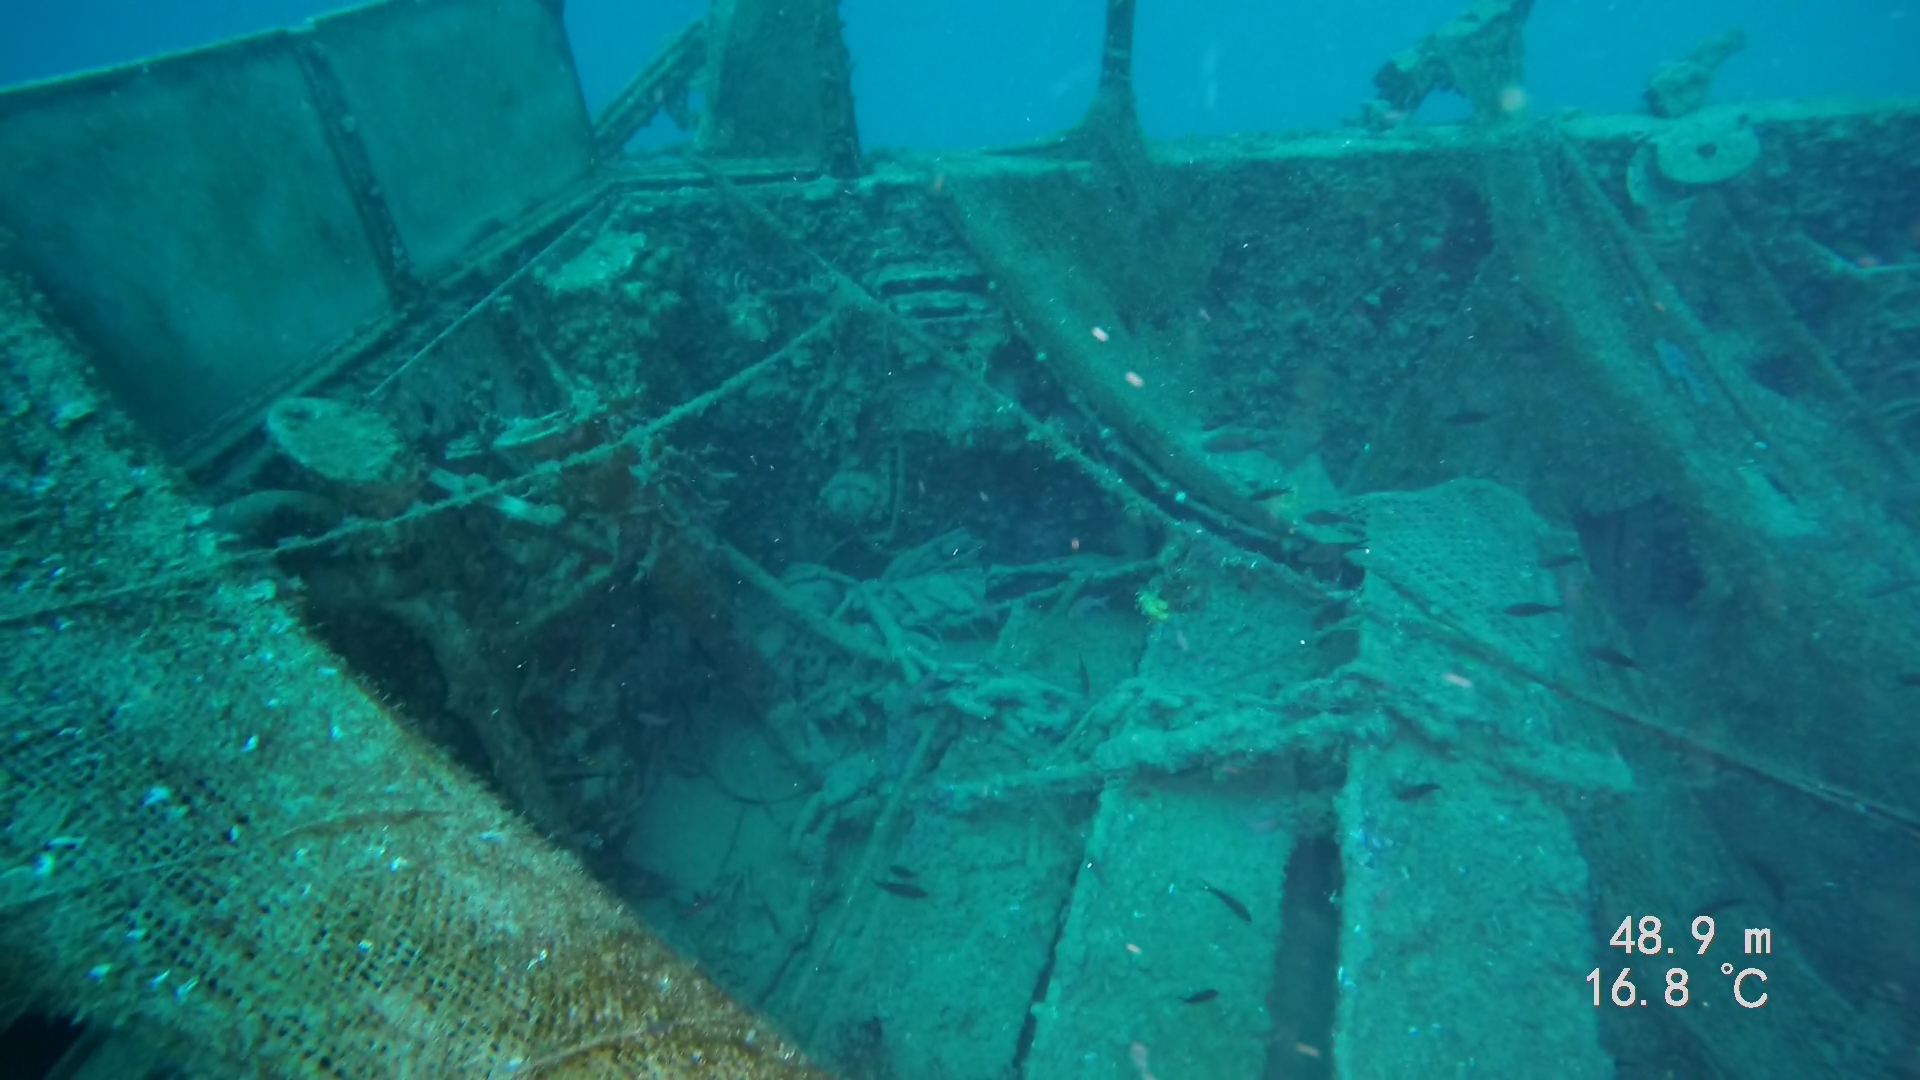 The wreck is covered with debris, fishing nets and marine life